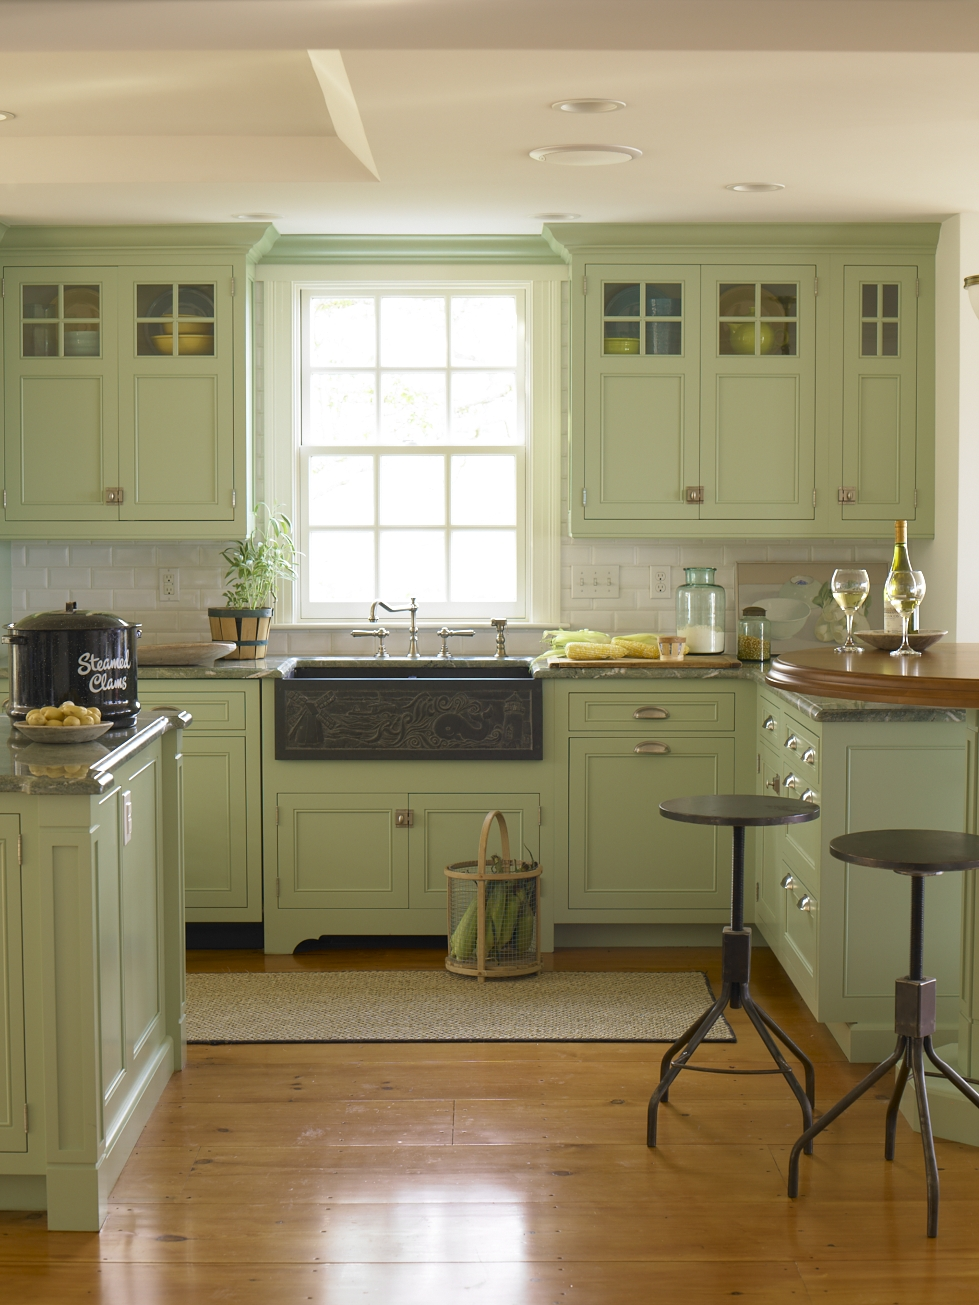 in kitchen karin lidbeck styling a summer country living feature